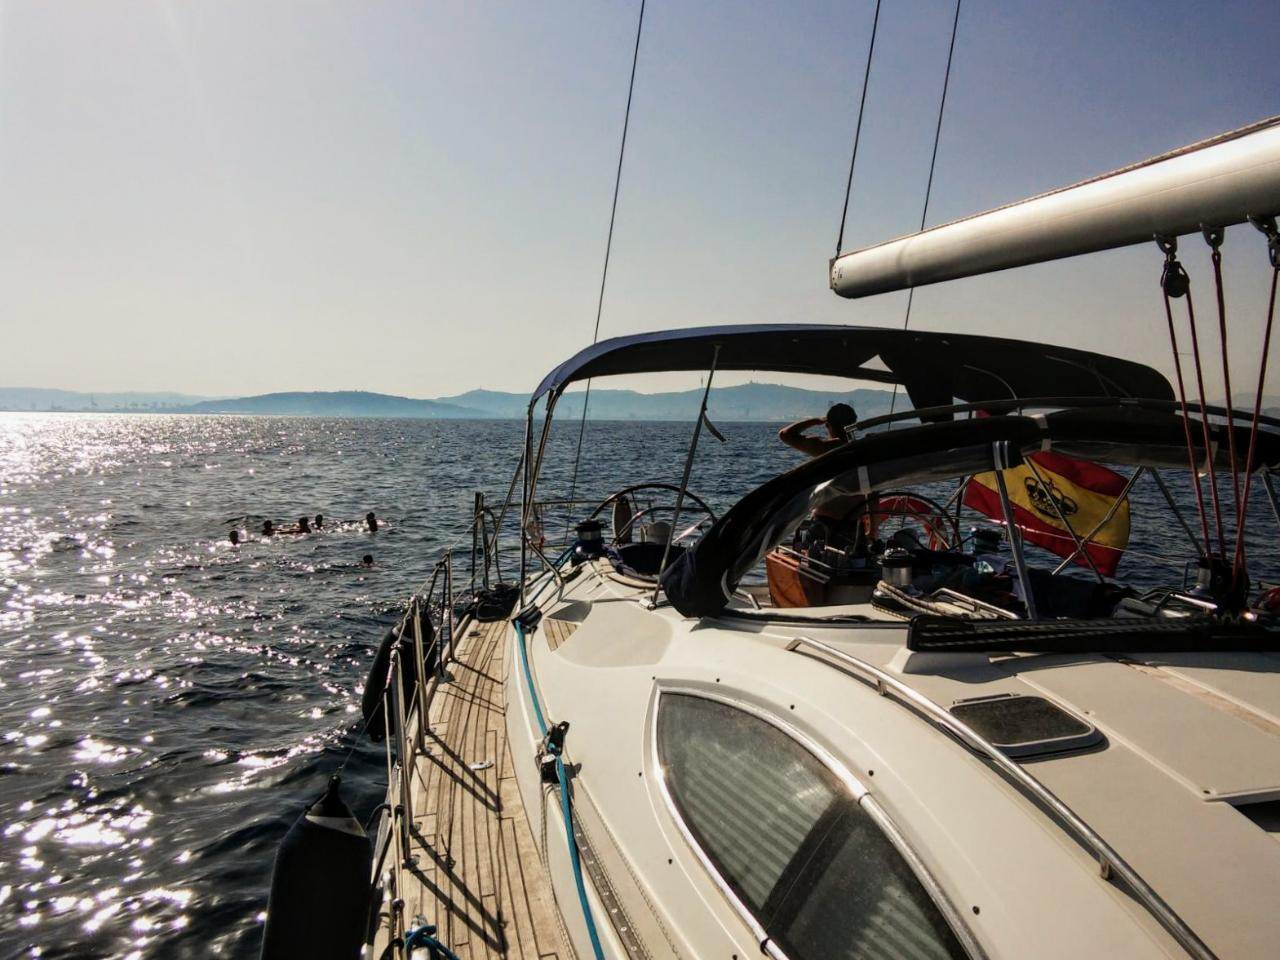 Vermut Time & Sailing Experience Barcelona from Euro 39,00 at 9.30am-12.00pm-2.30pm-4.30pm